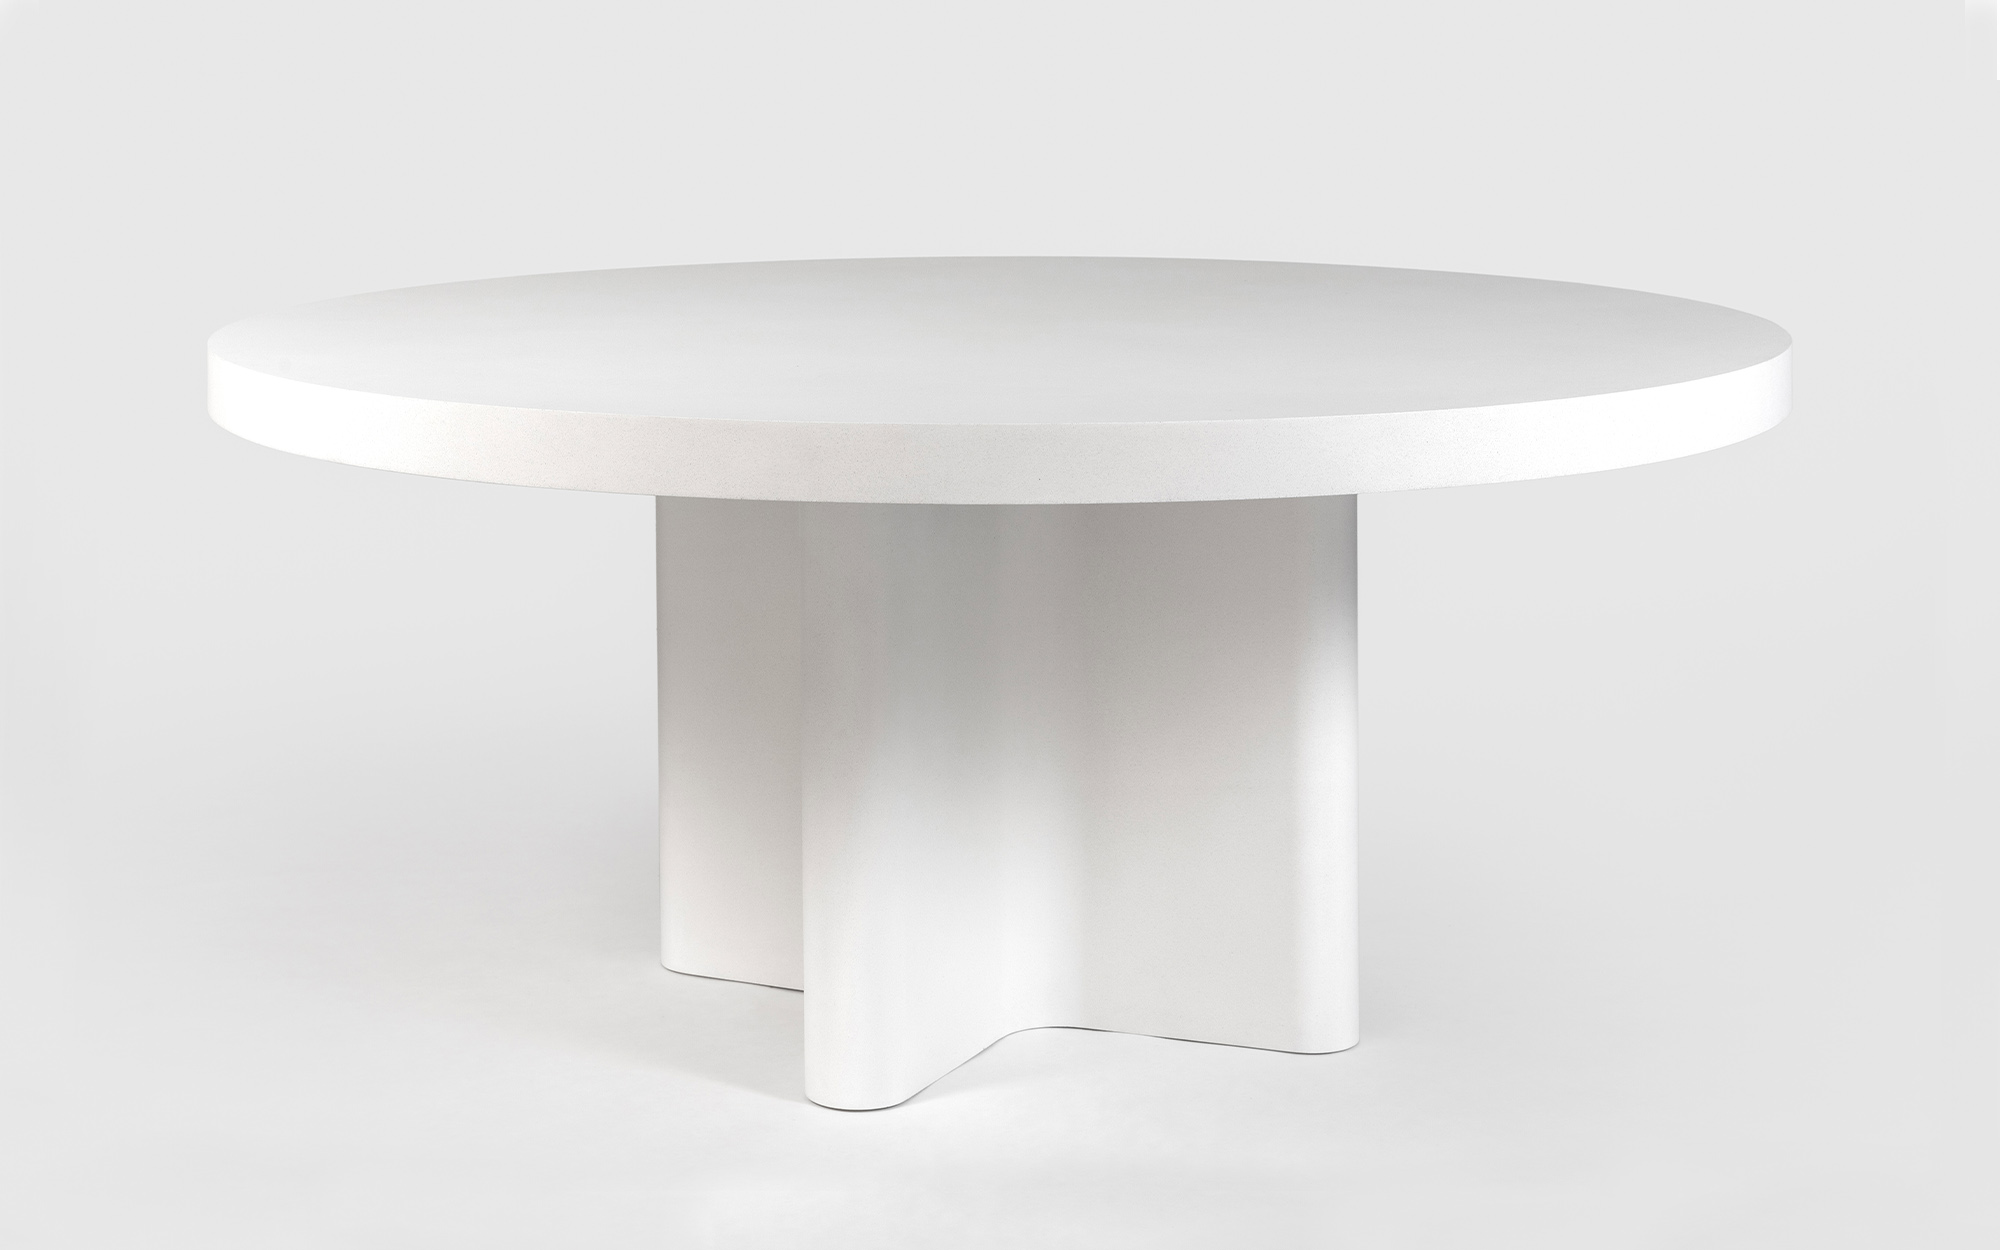 François Bauchet Azo-X round table